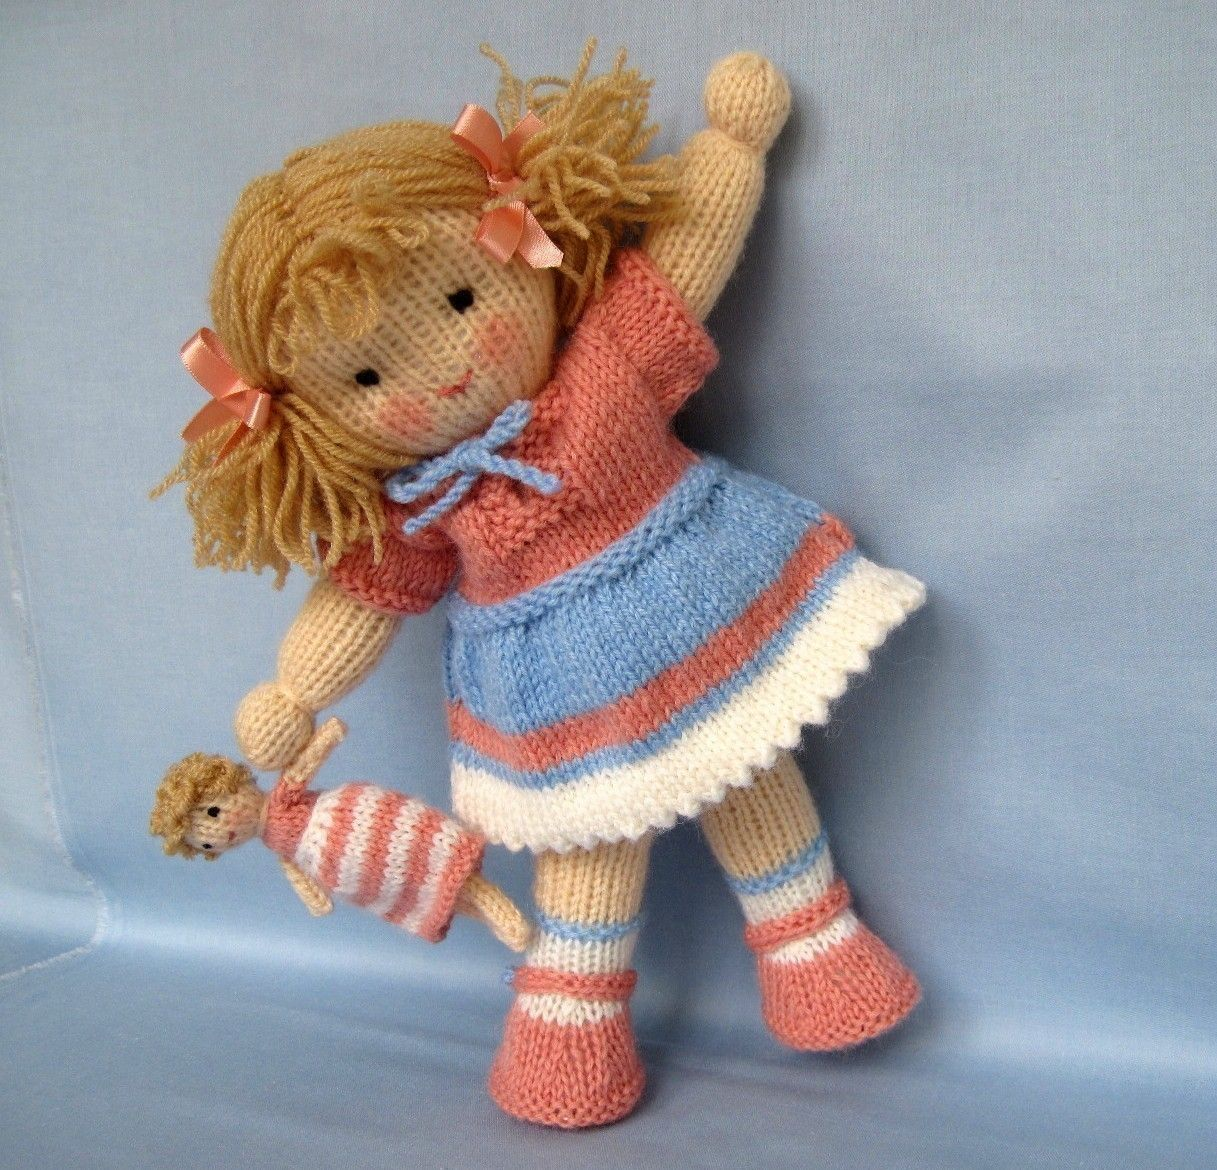 Lulu and little doll knitting pattern - INSTANT DOWNLOAD Knitting patterns,...